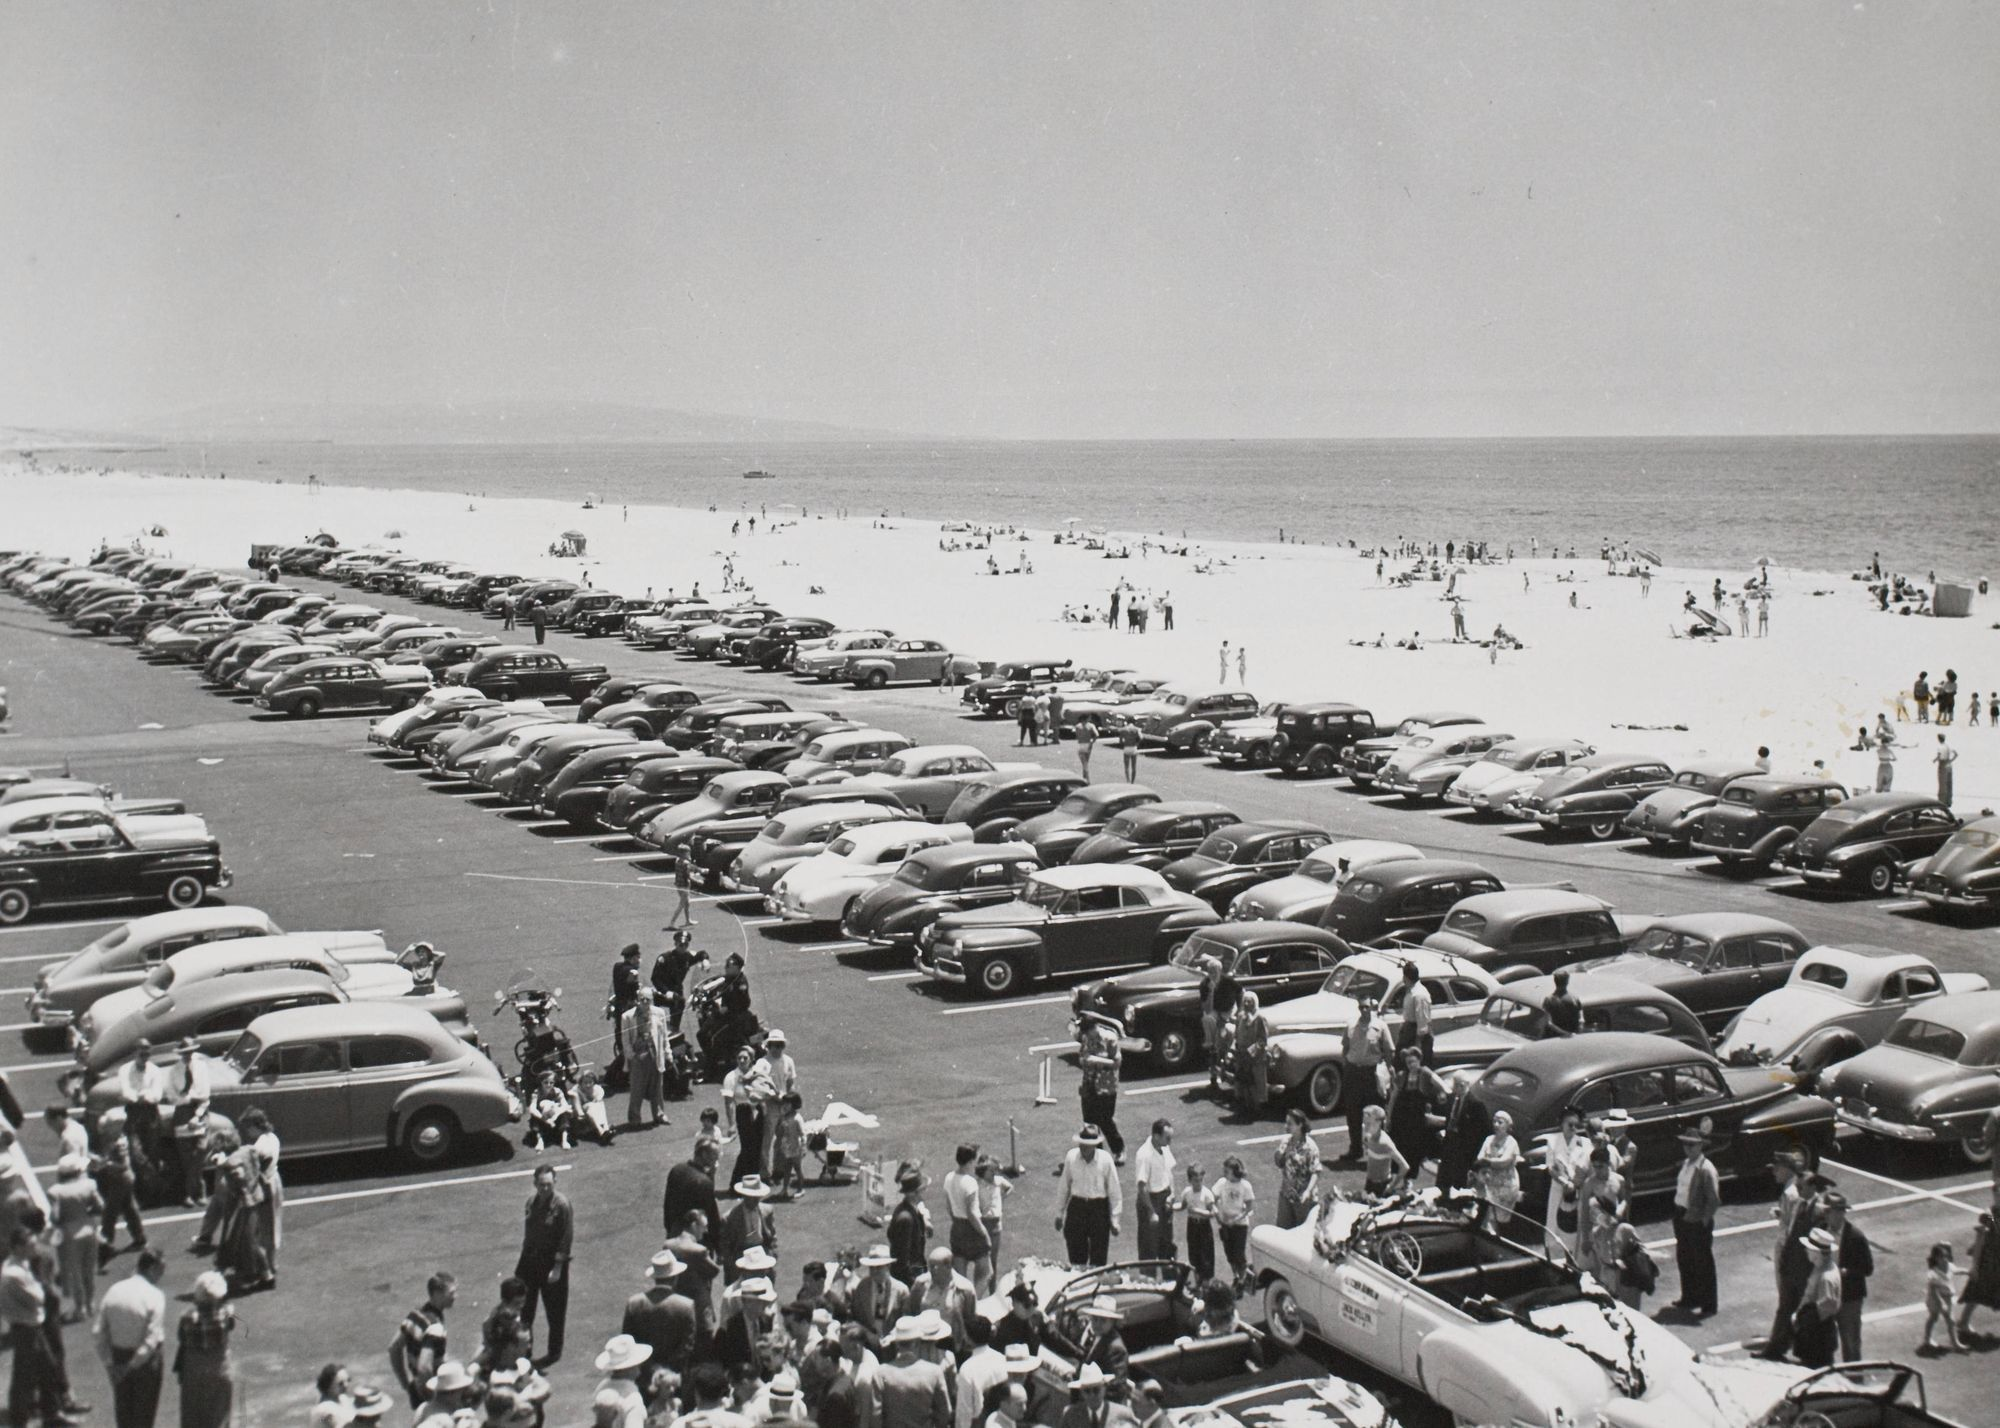 Venice los angeles california 1952 vintage cars lined up at venice beach california in